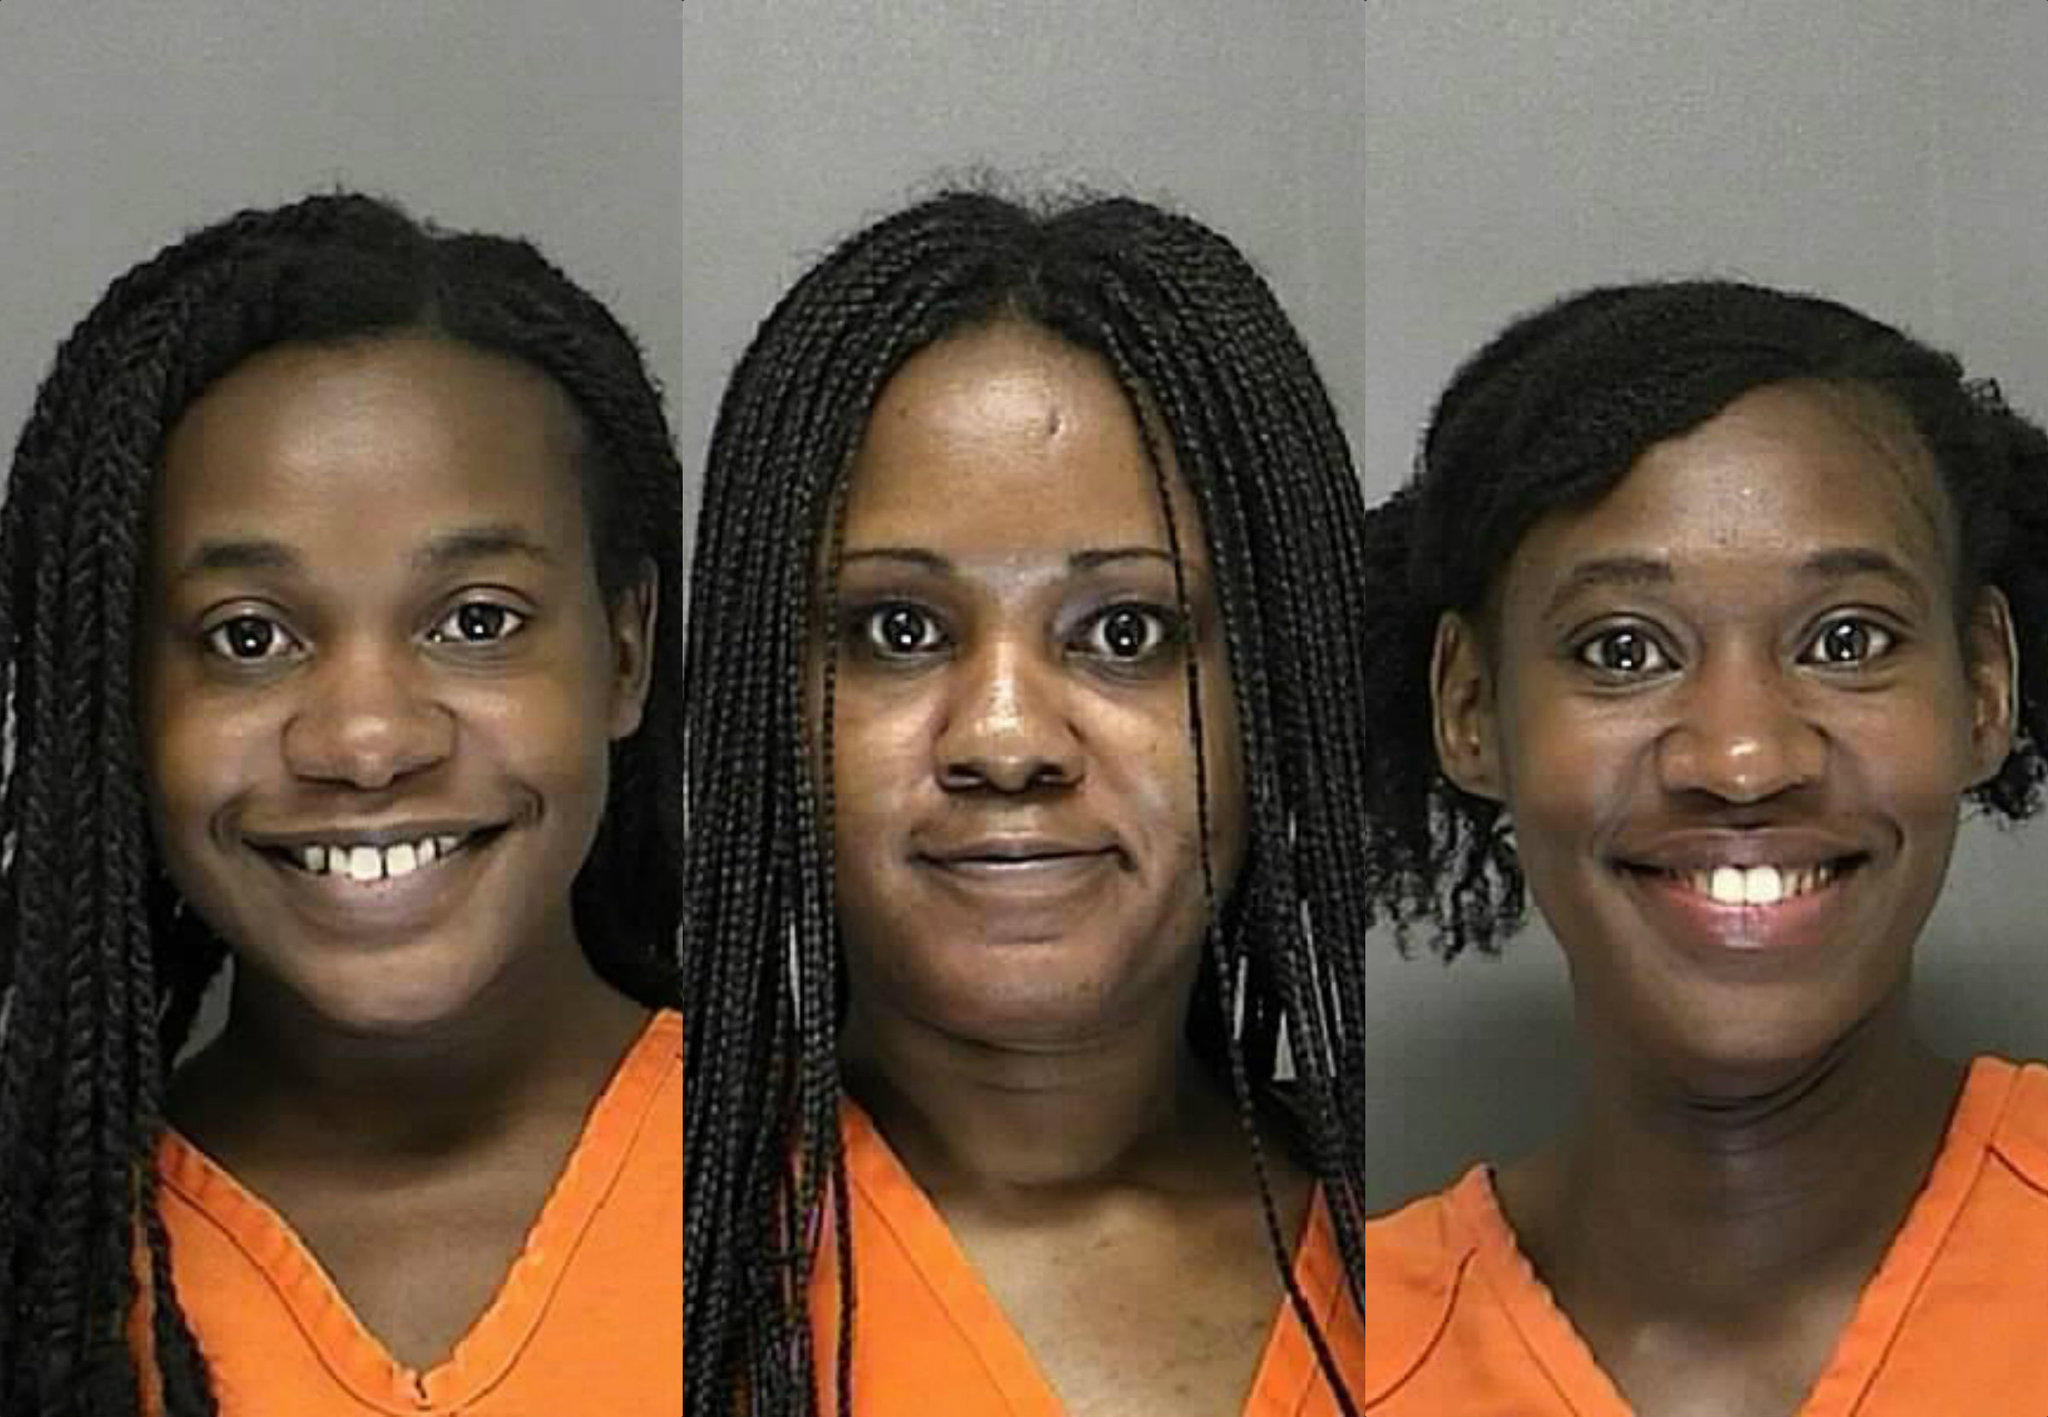 Ishiyah McGhee, left, Janine McGhee, and Moriyah McGhee are accused of attacking a 14-year-old girl in Deltona.